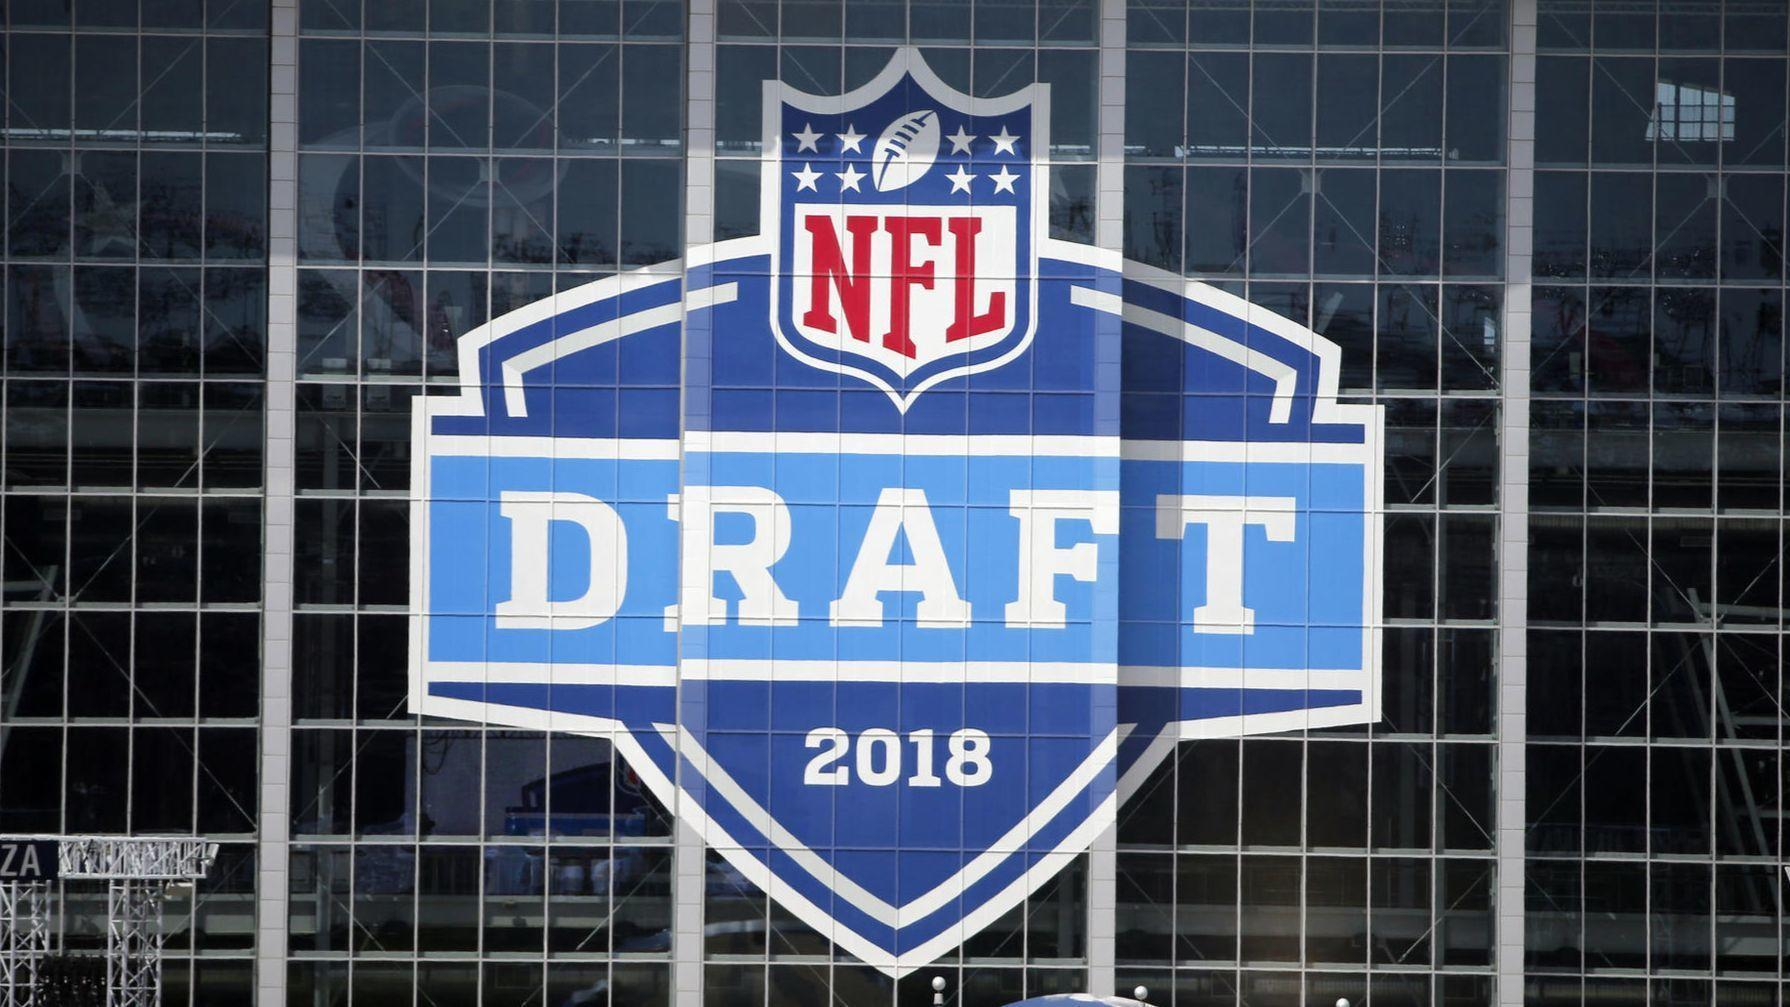 ct-spt-bears-nfl-draft-questions-20180421